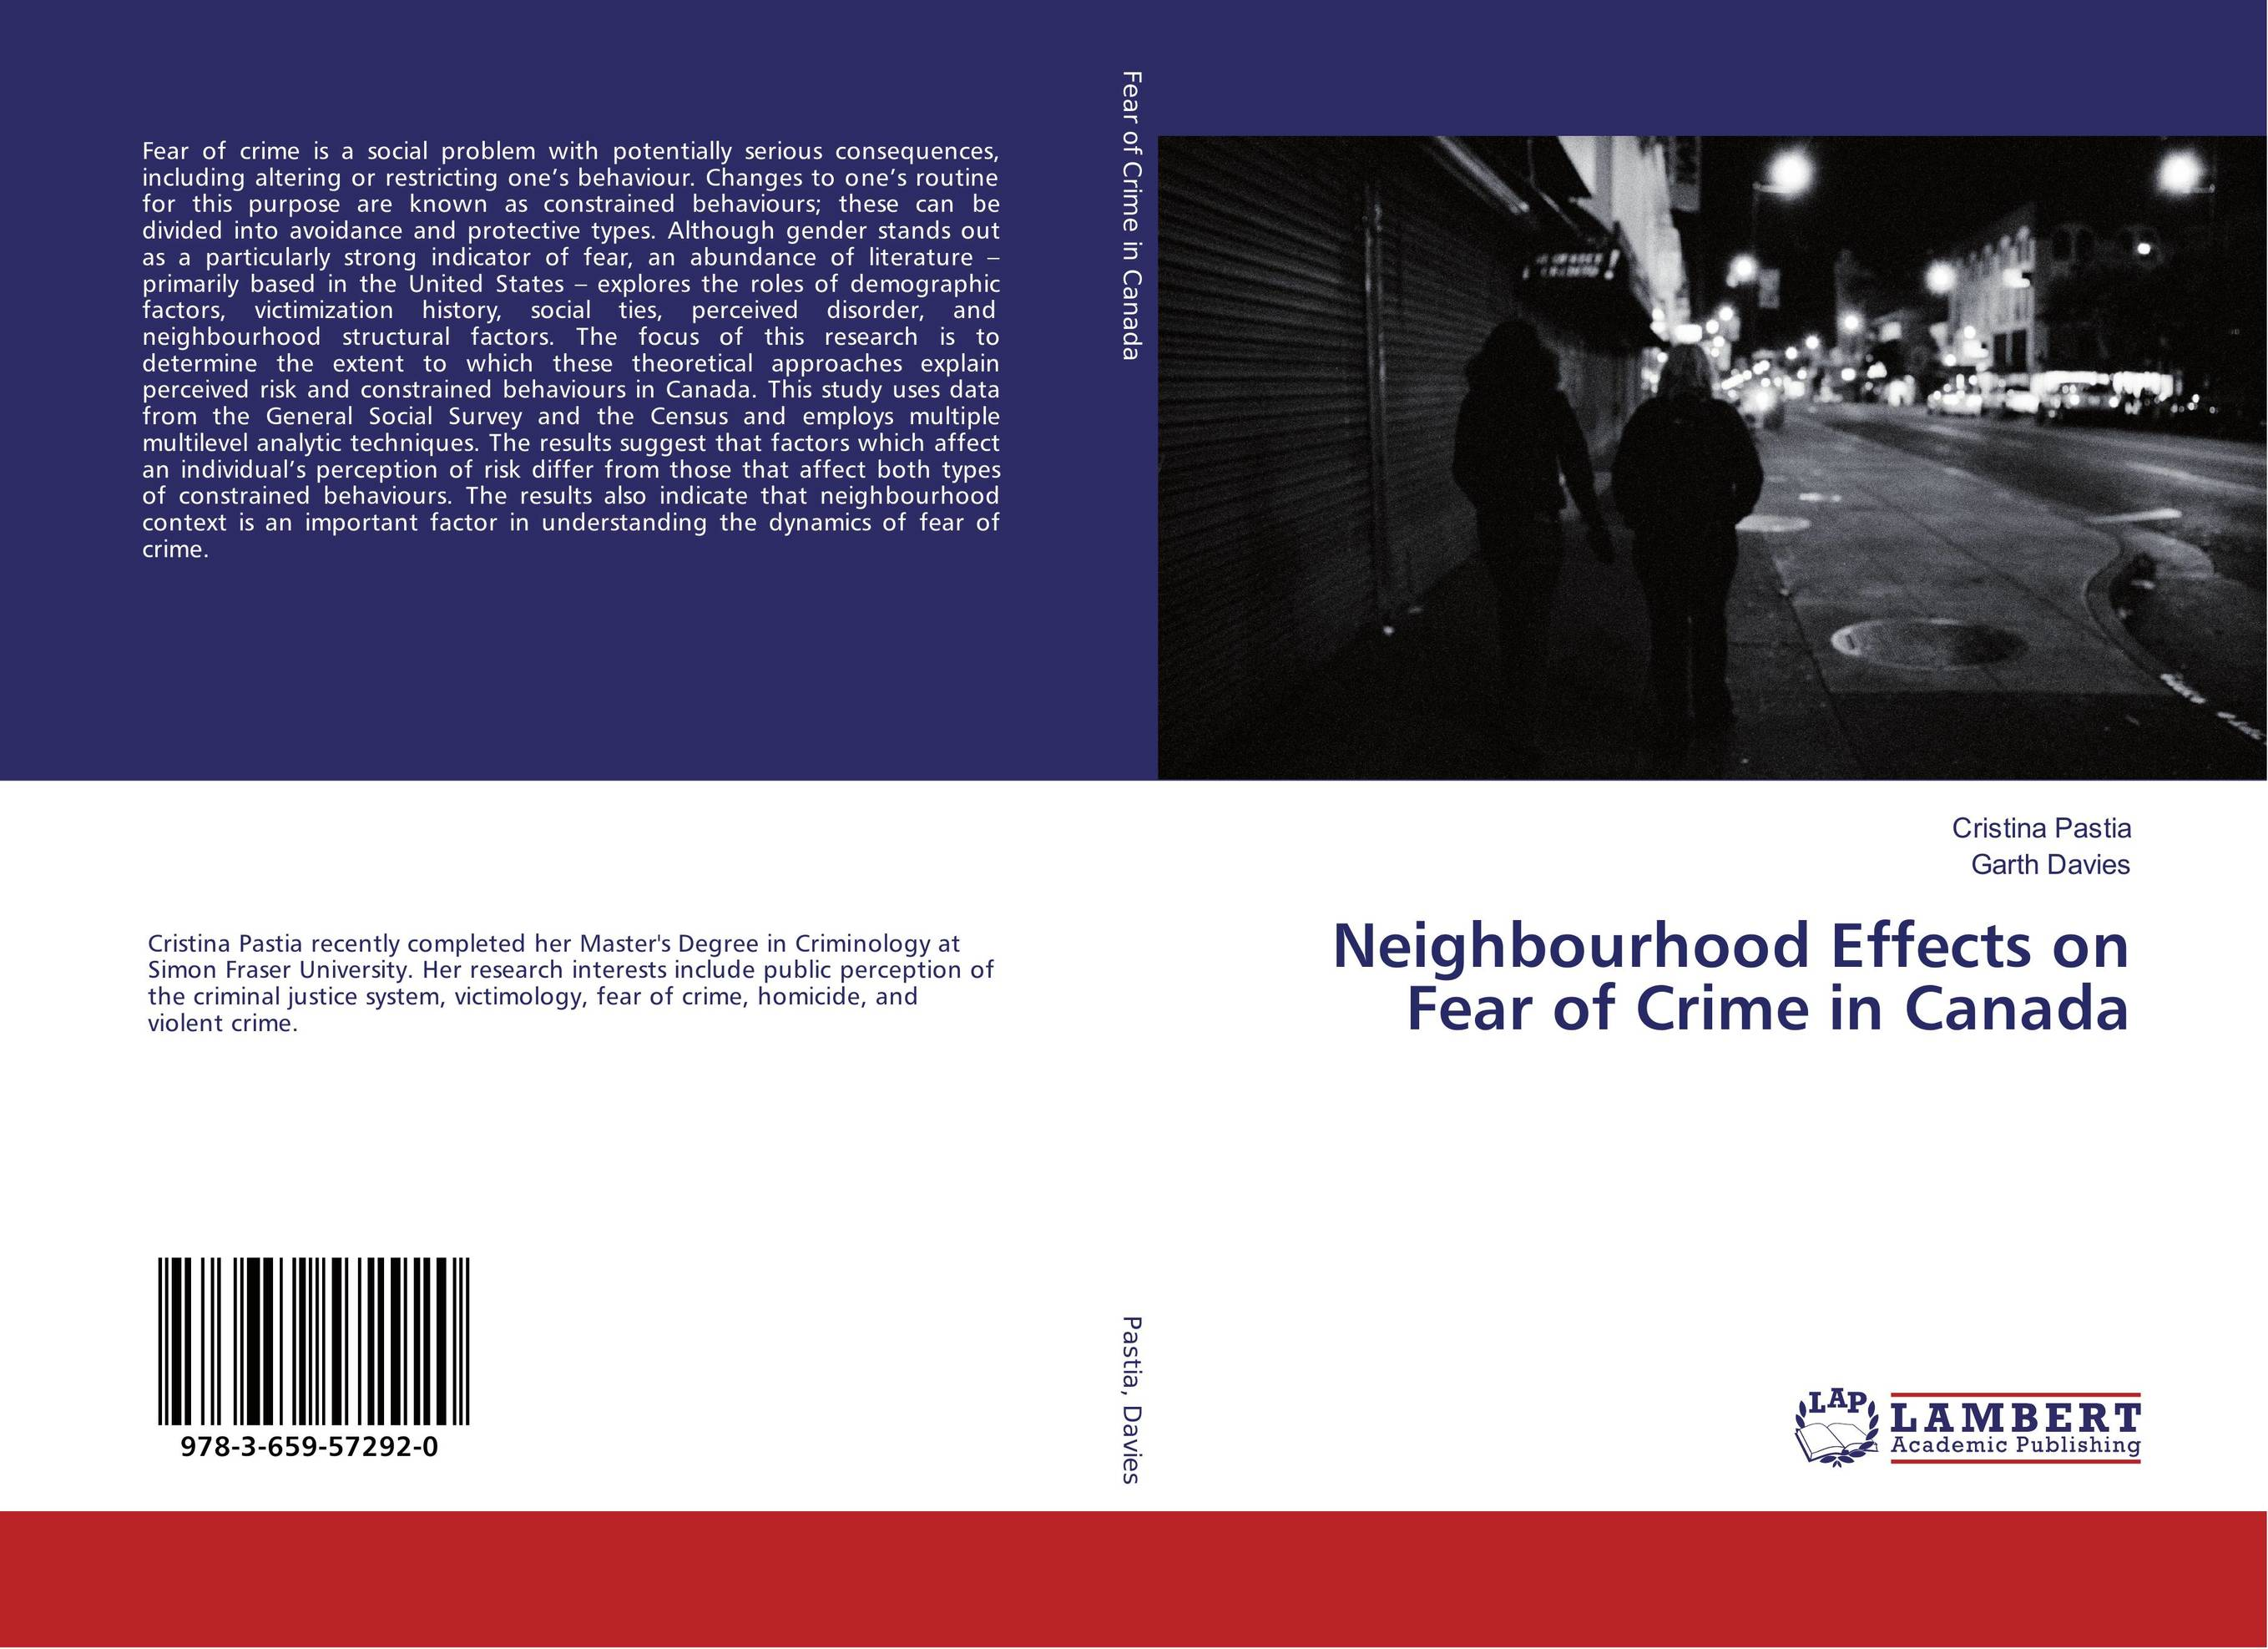 an essay on the most common crimes in canada Decisions on crime classification are made by state legislators the determination focuses on the seriousness of the crime this article looks at the differences among these crime classifications, moving from least serious (infractions) to most (felonies.